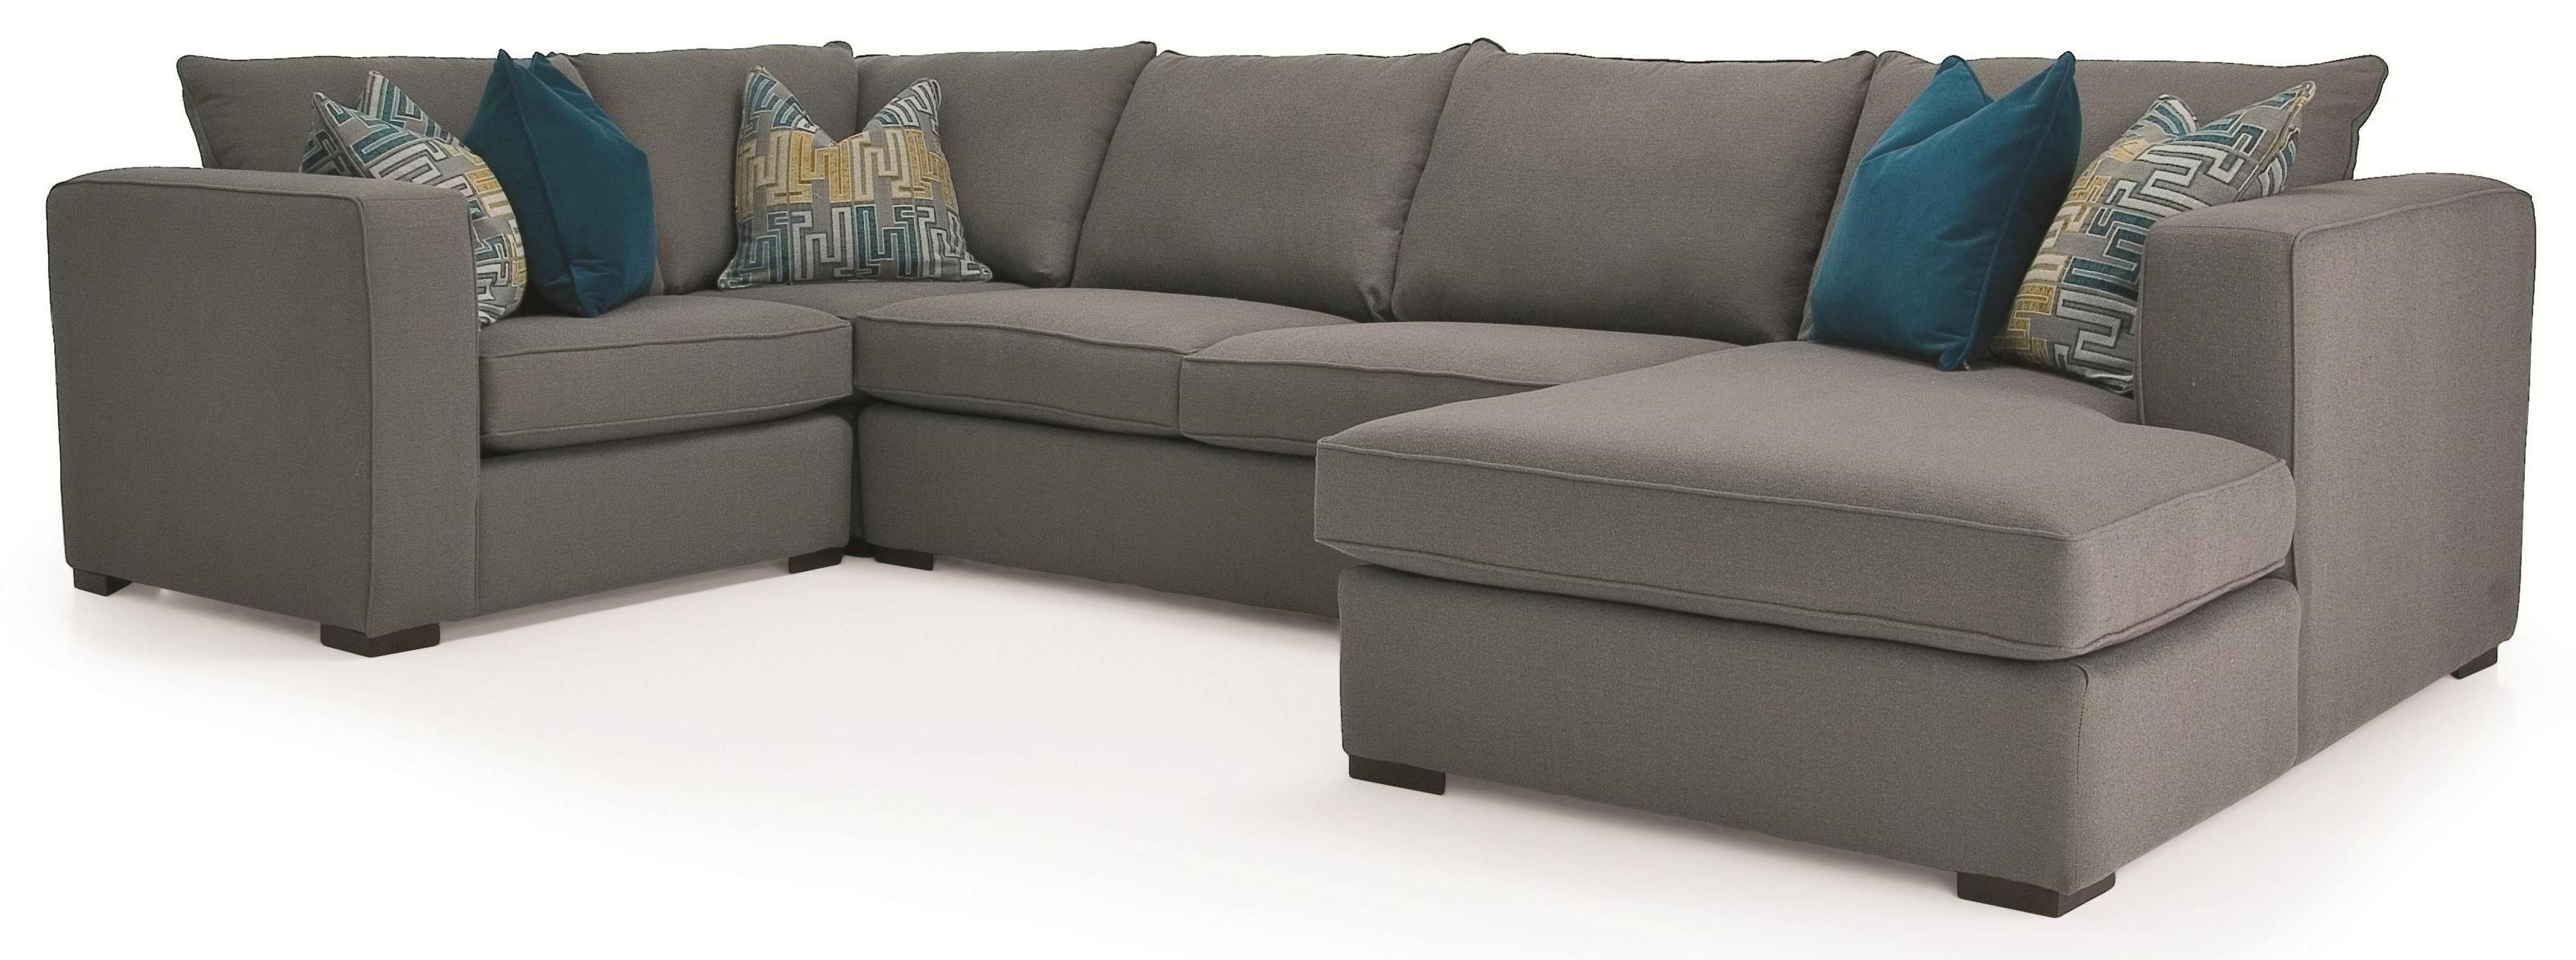 Decor rest 2900 4 piece contemporary sectional with rhf for Sofa sectionnel liquidation